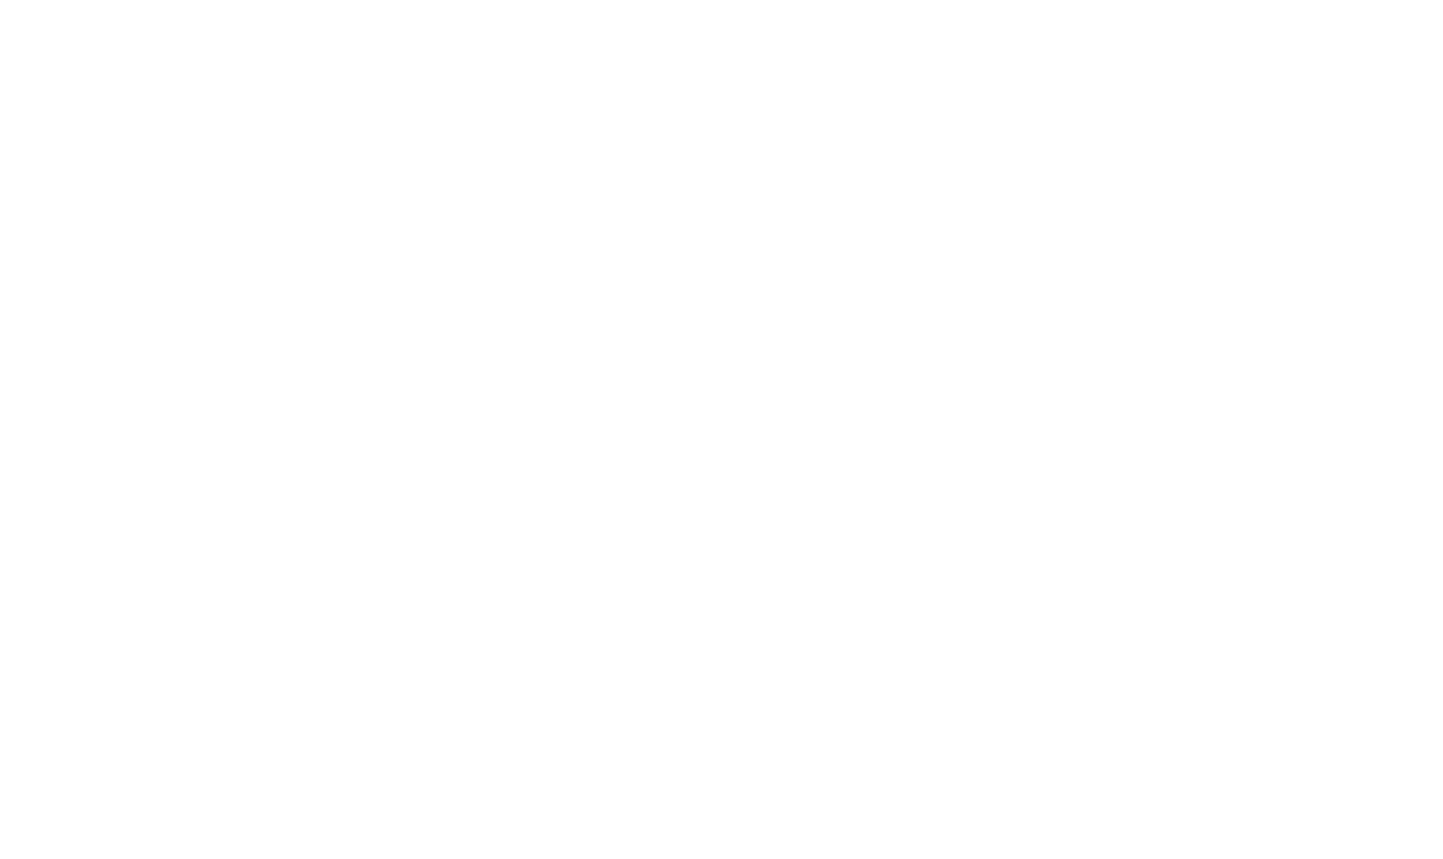 Oracle Experience